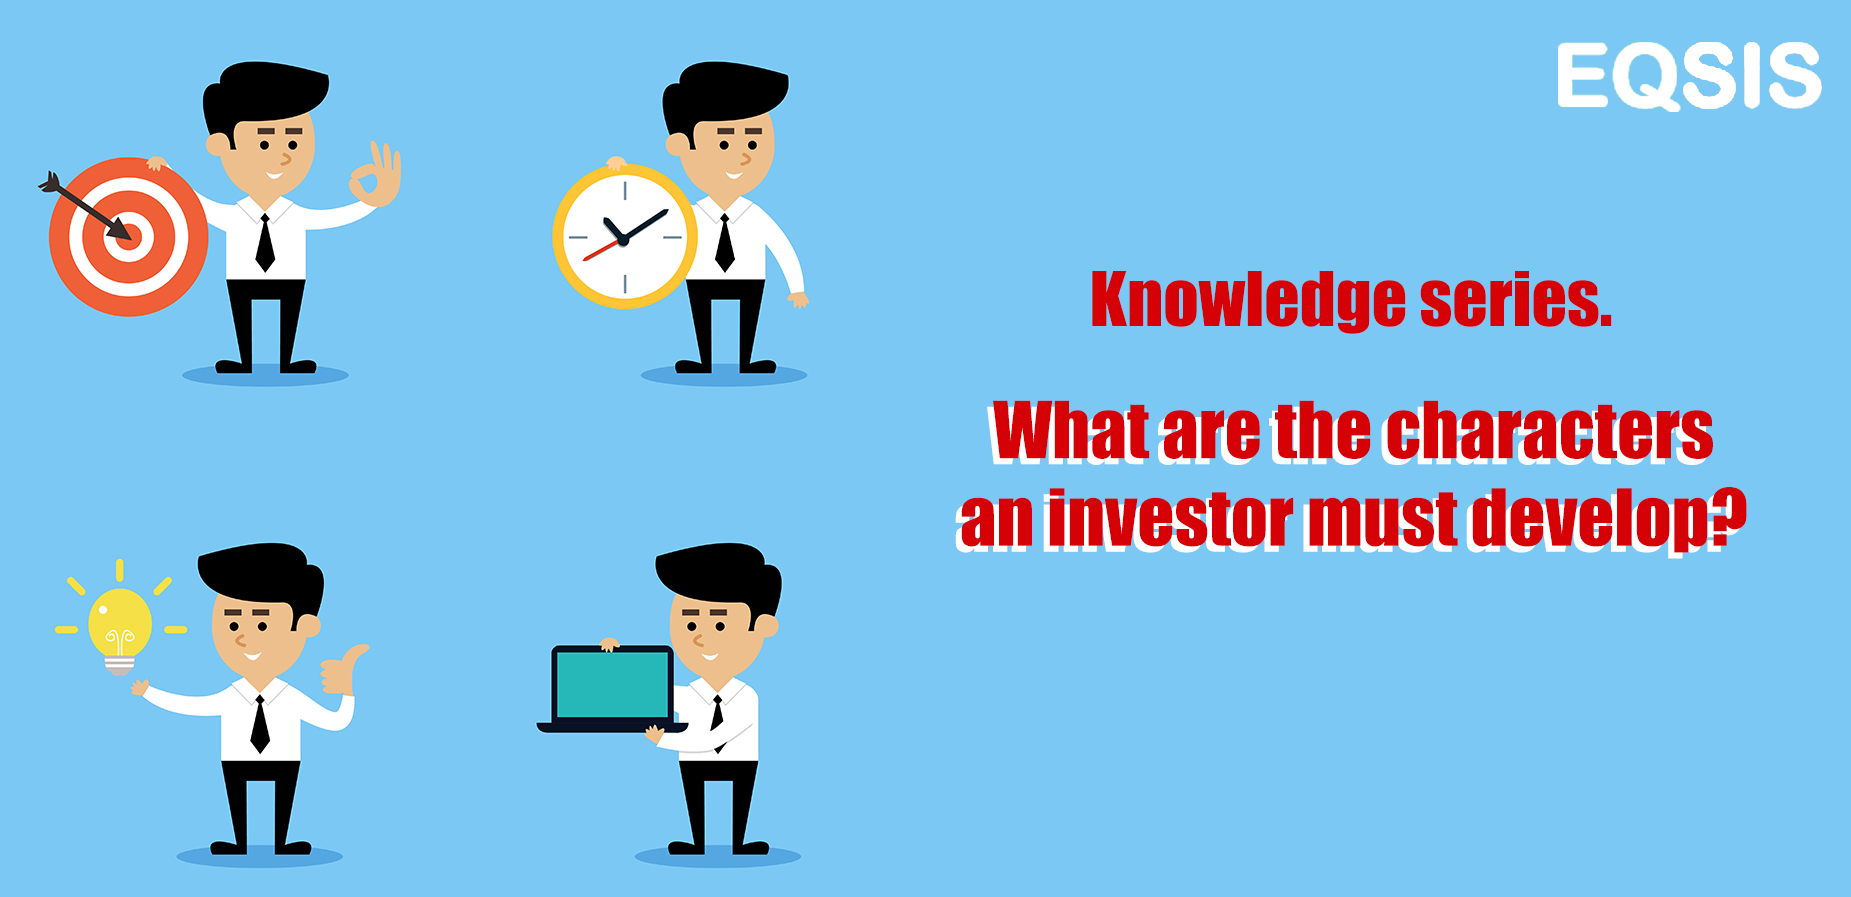 What are the characters an investor must develop